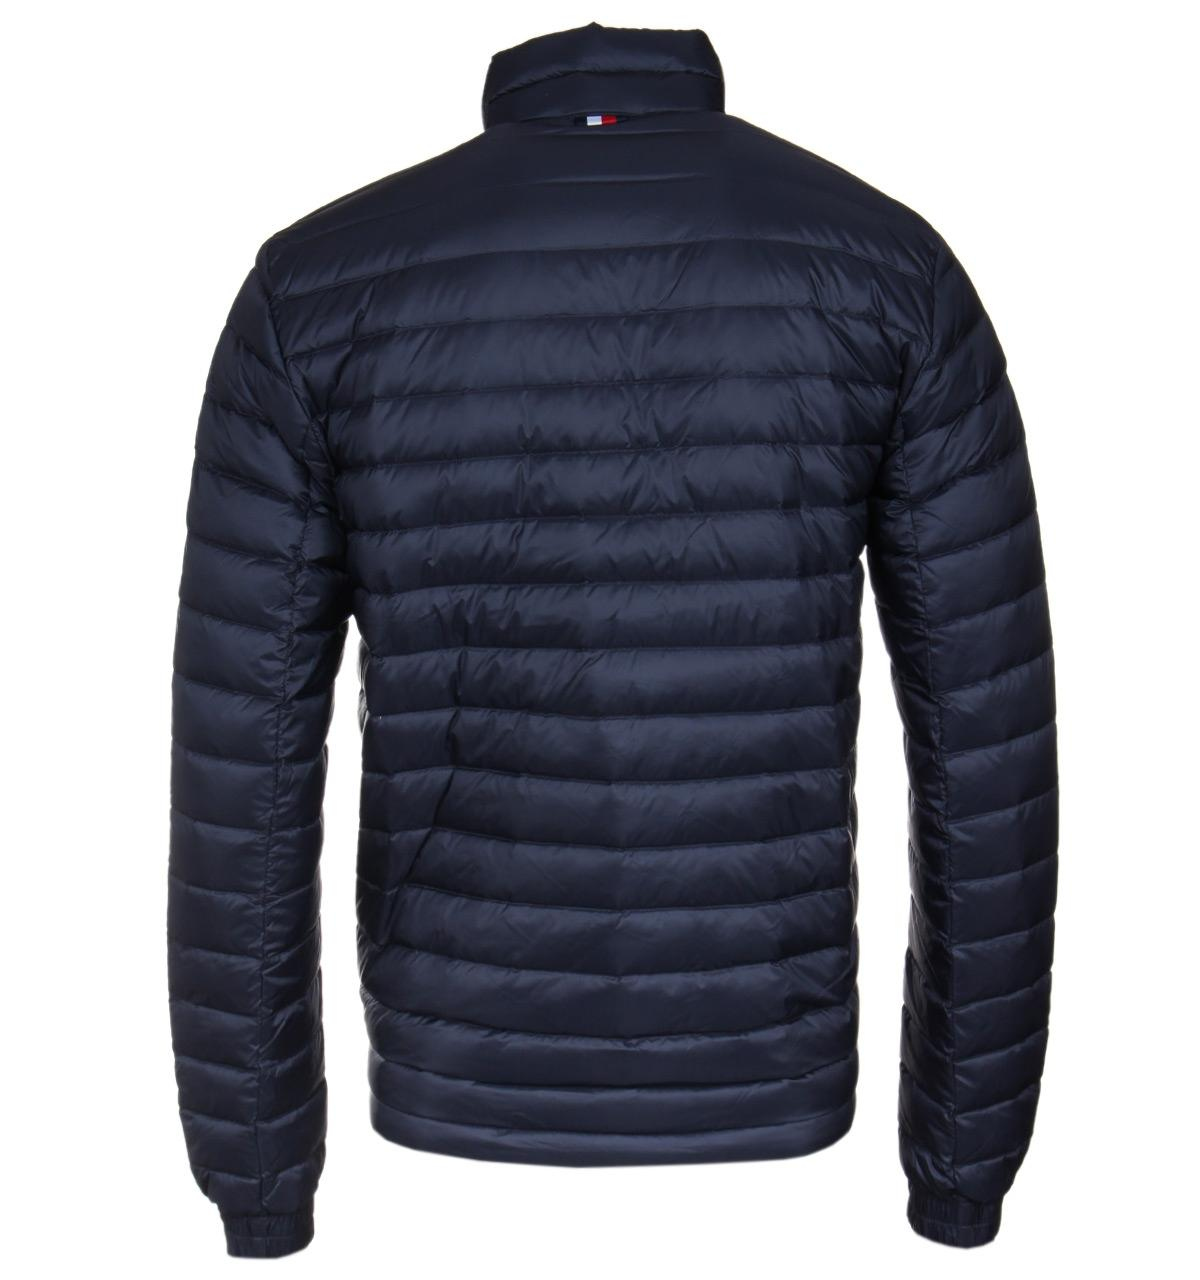 Tommy Hilfiger Packable Navy Down Bomber Jacket in Blue for Men - Lyst 3e089c58be7